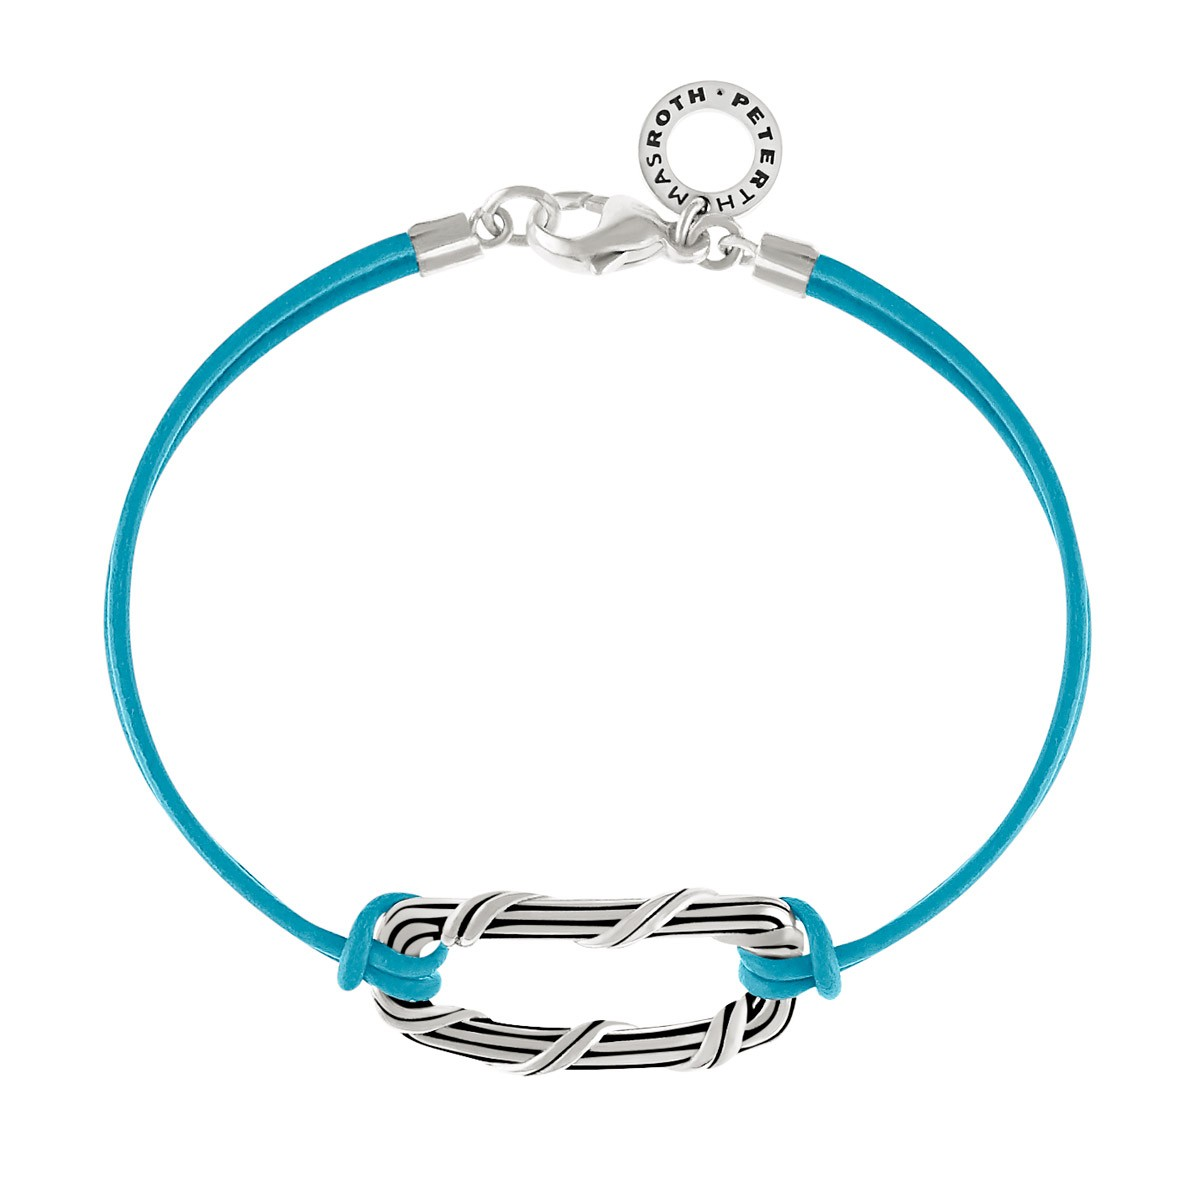 Rectangle Link Bracelet in sterling silver and turquoise blue leather